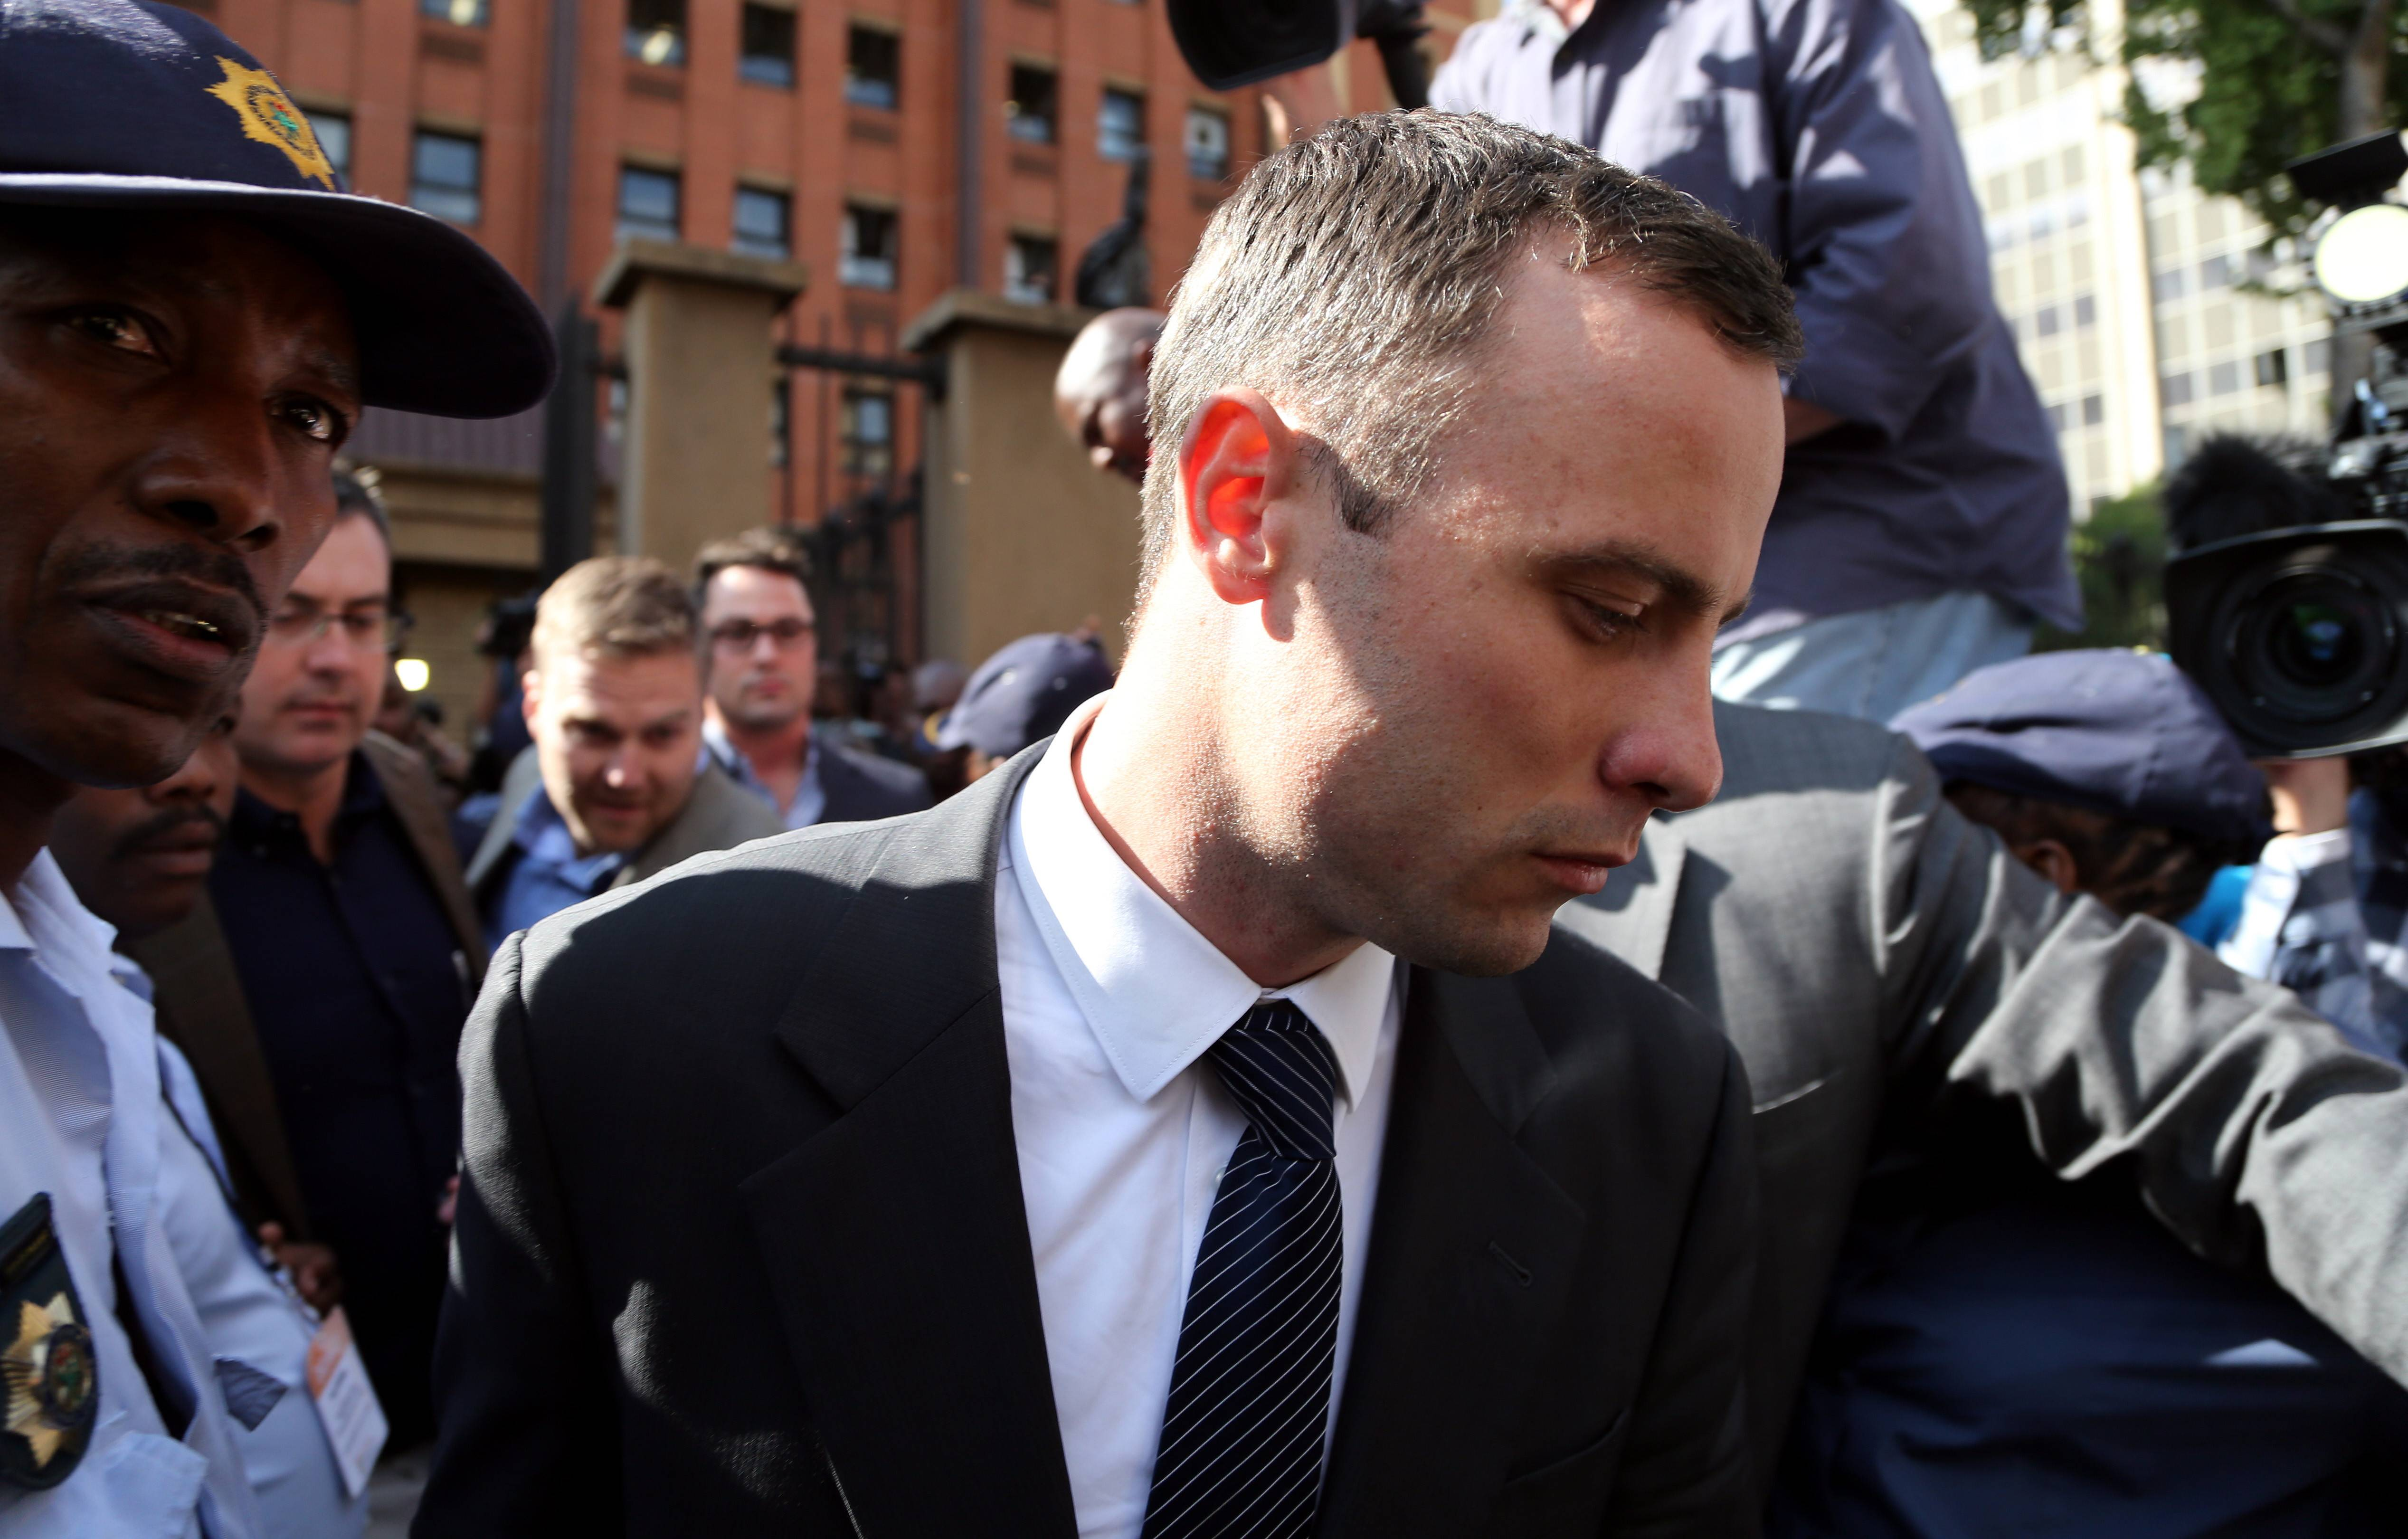 Oscar Pistorius, leaves the high court in Pretoria, South Africa, Tuesday. He is charged with murder for the shooting death of his girlfriend, Reeva Steenkamp, in 2013.